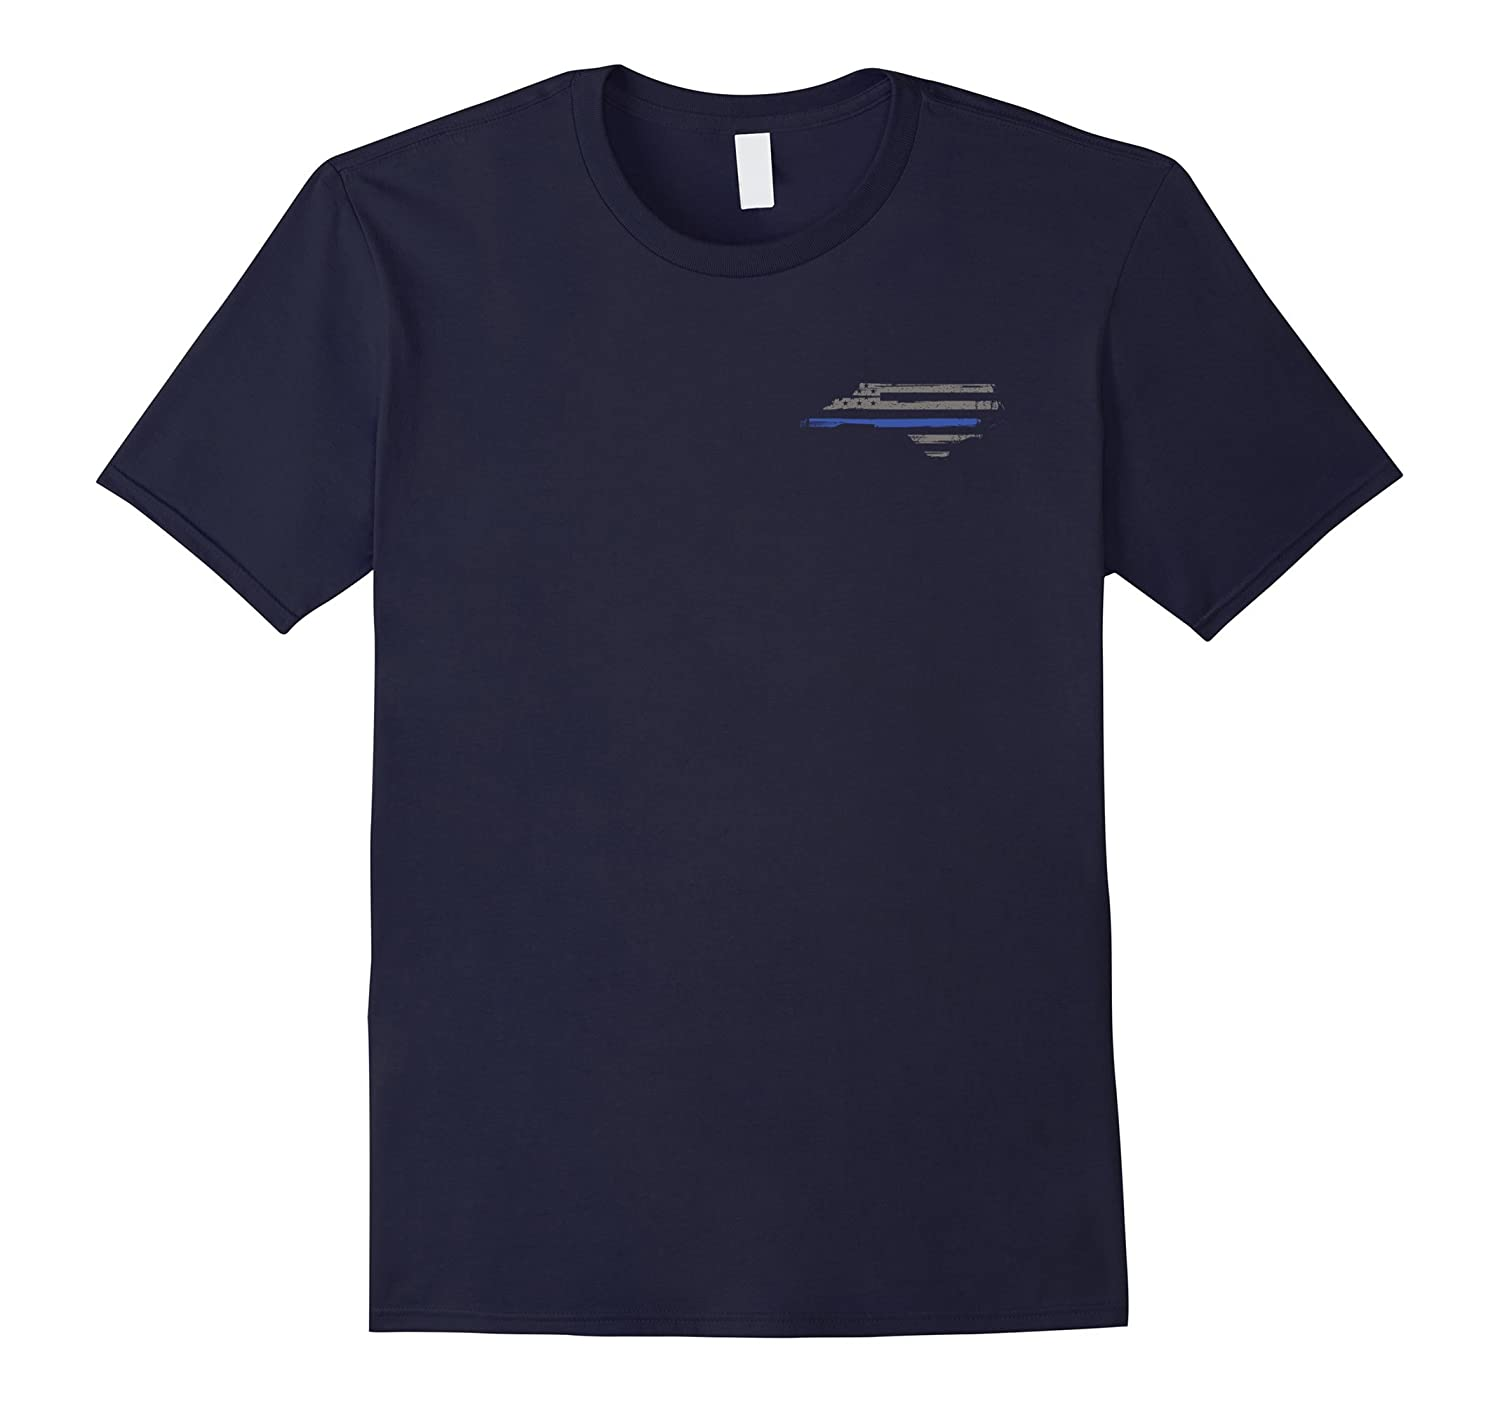 North Carolina Police Law Enforcement Thin Blue Line Shirt-RT